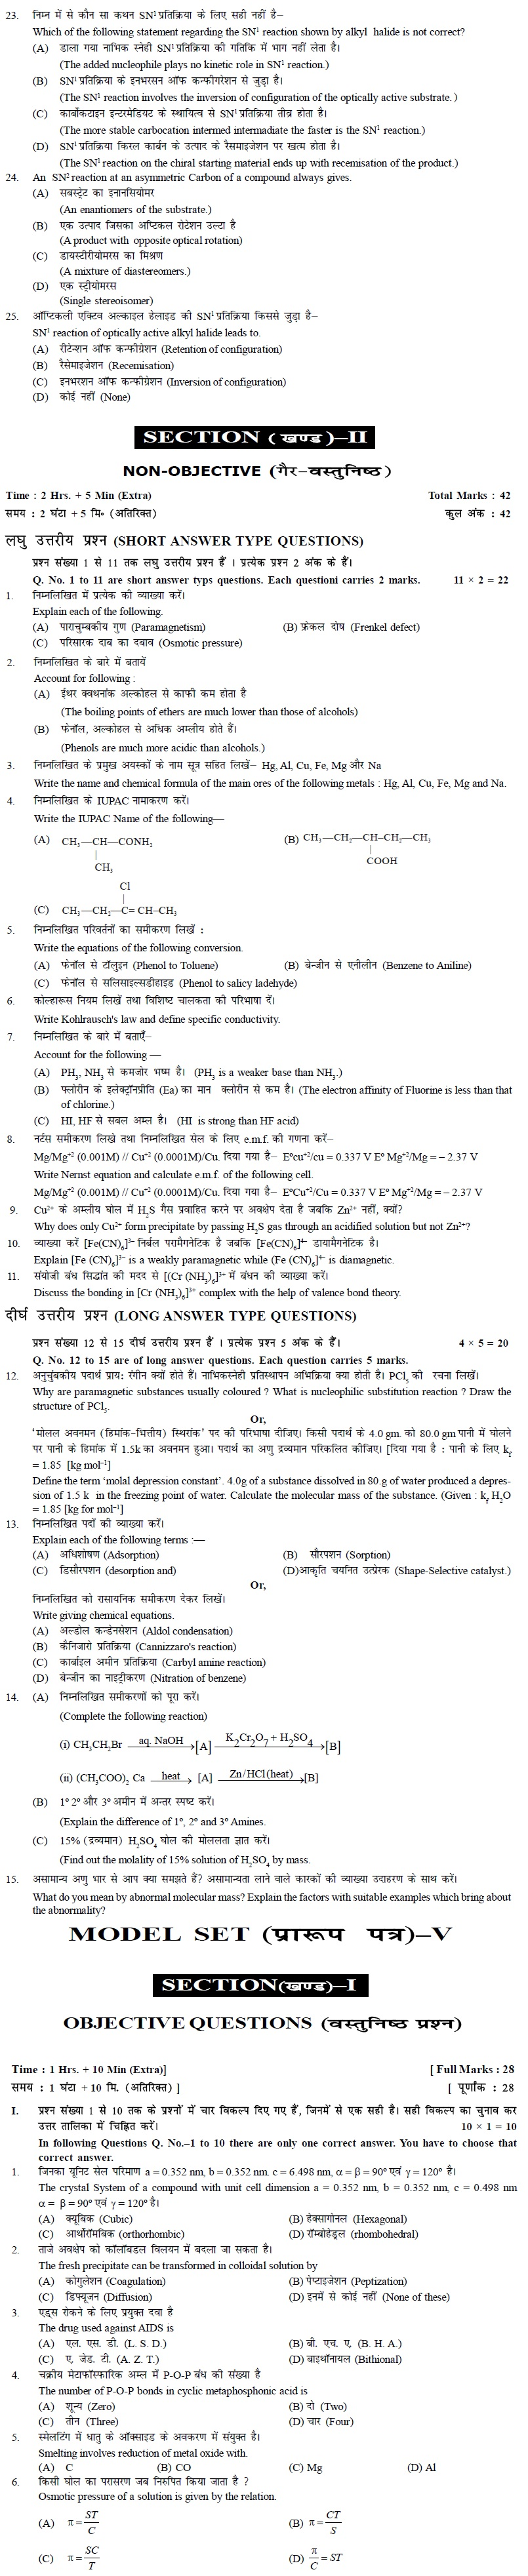 Bihar Board Class XII Science Model Question Papers - Chemistry